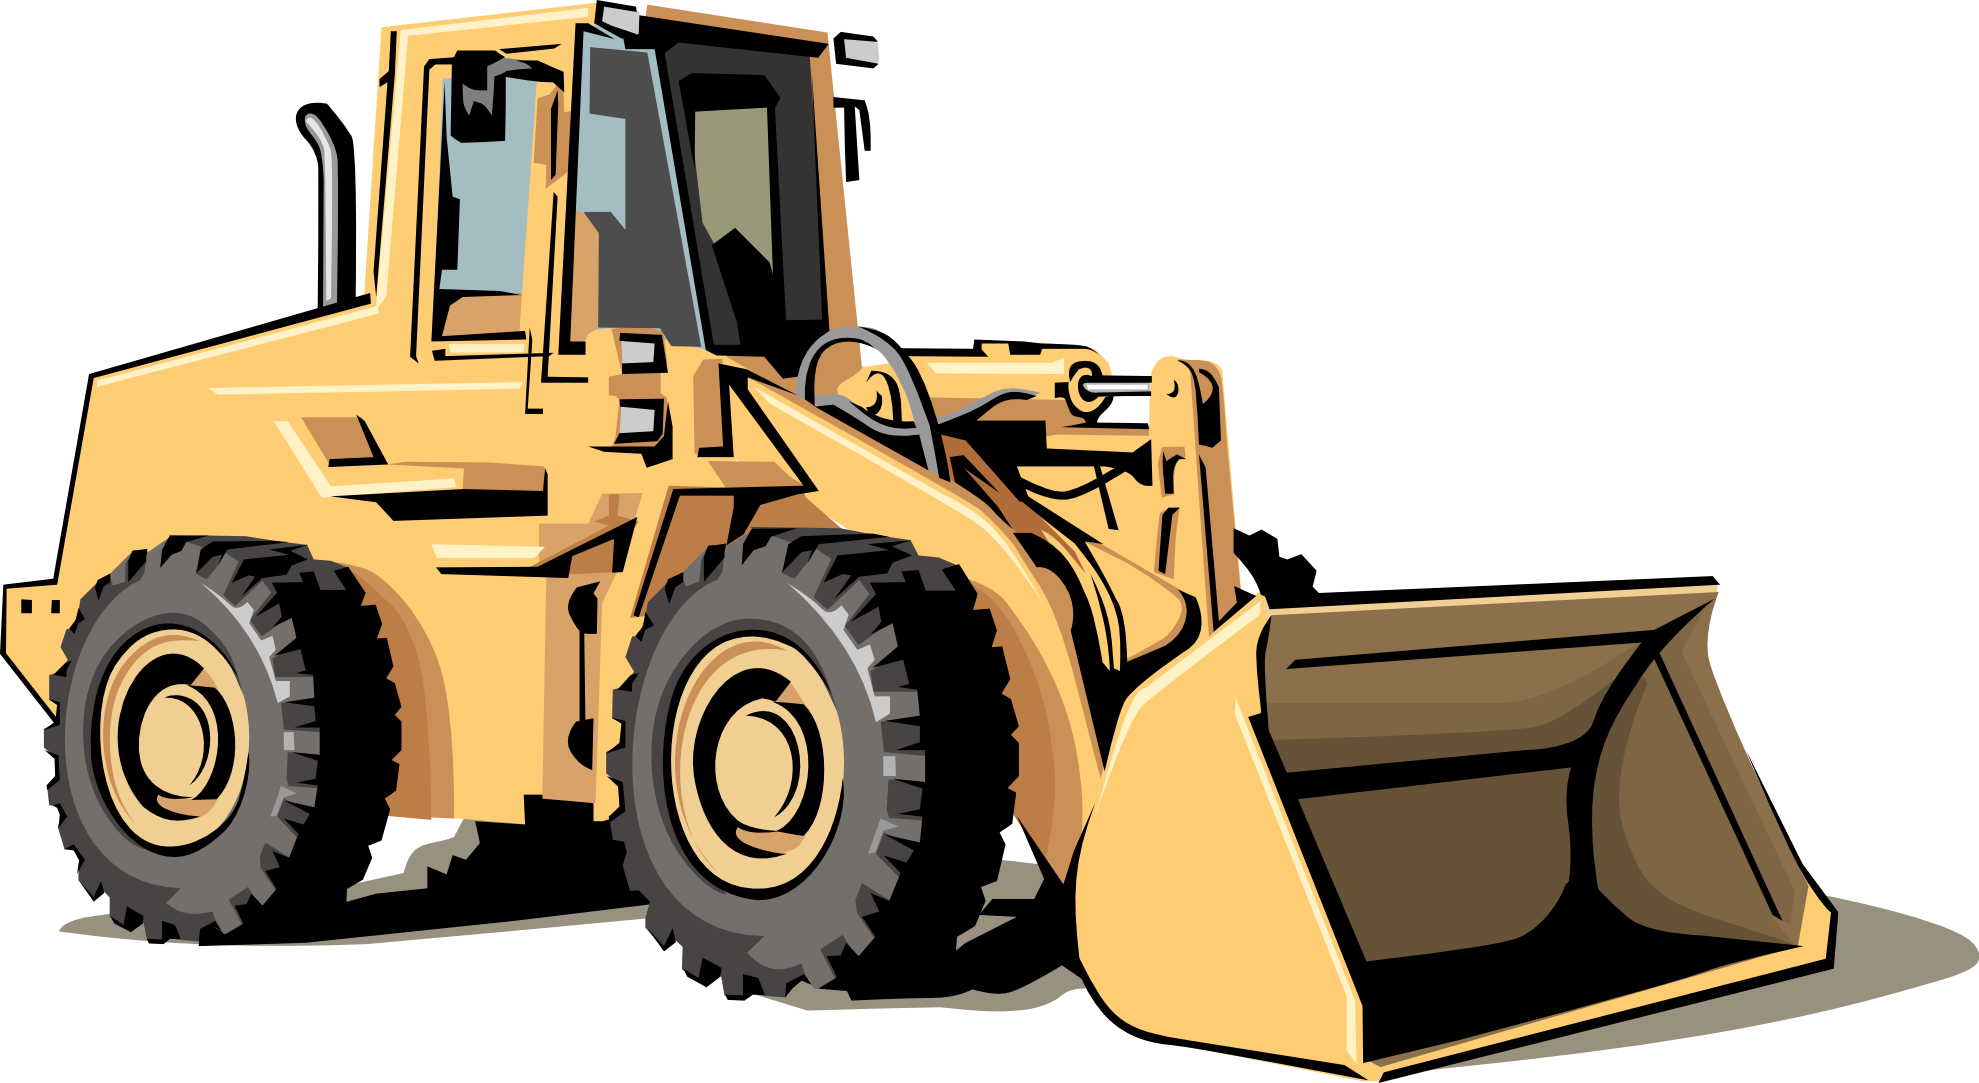 Cat bulldozer clipart svg freeuse 28+ Collection of Construction Equipment Clipart | High quality ... svg freeuse